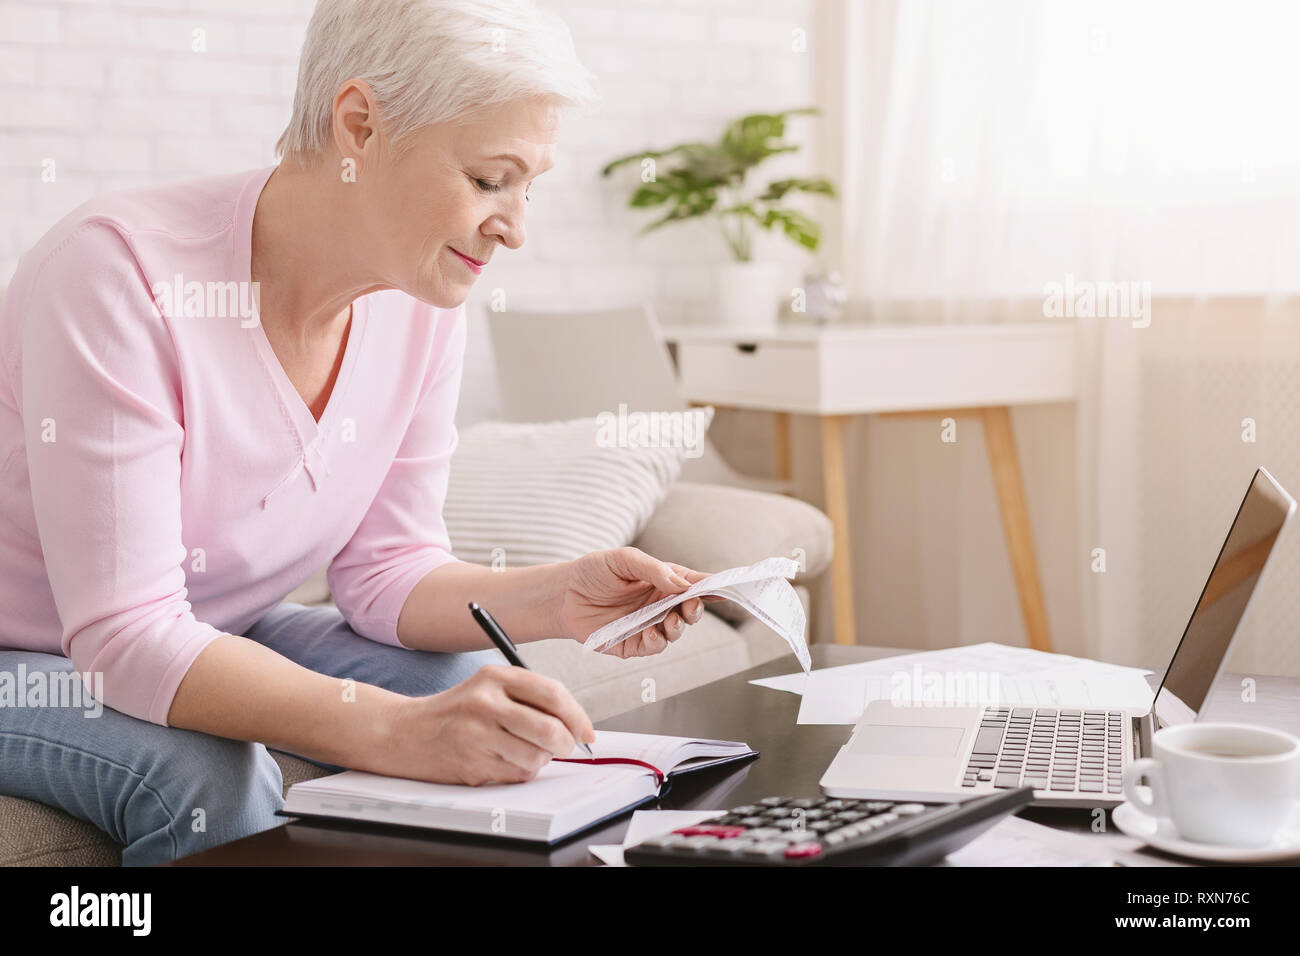 Senior woman bookkeeping bills and payments at home - Stock Image